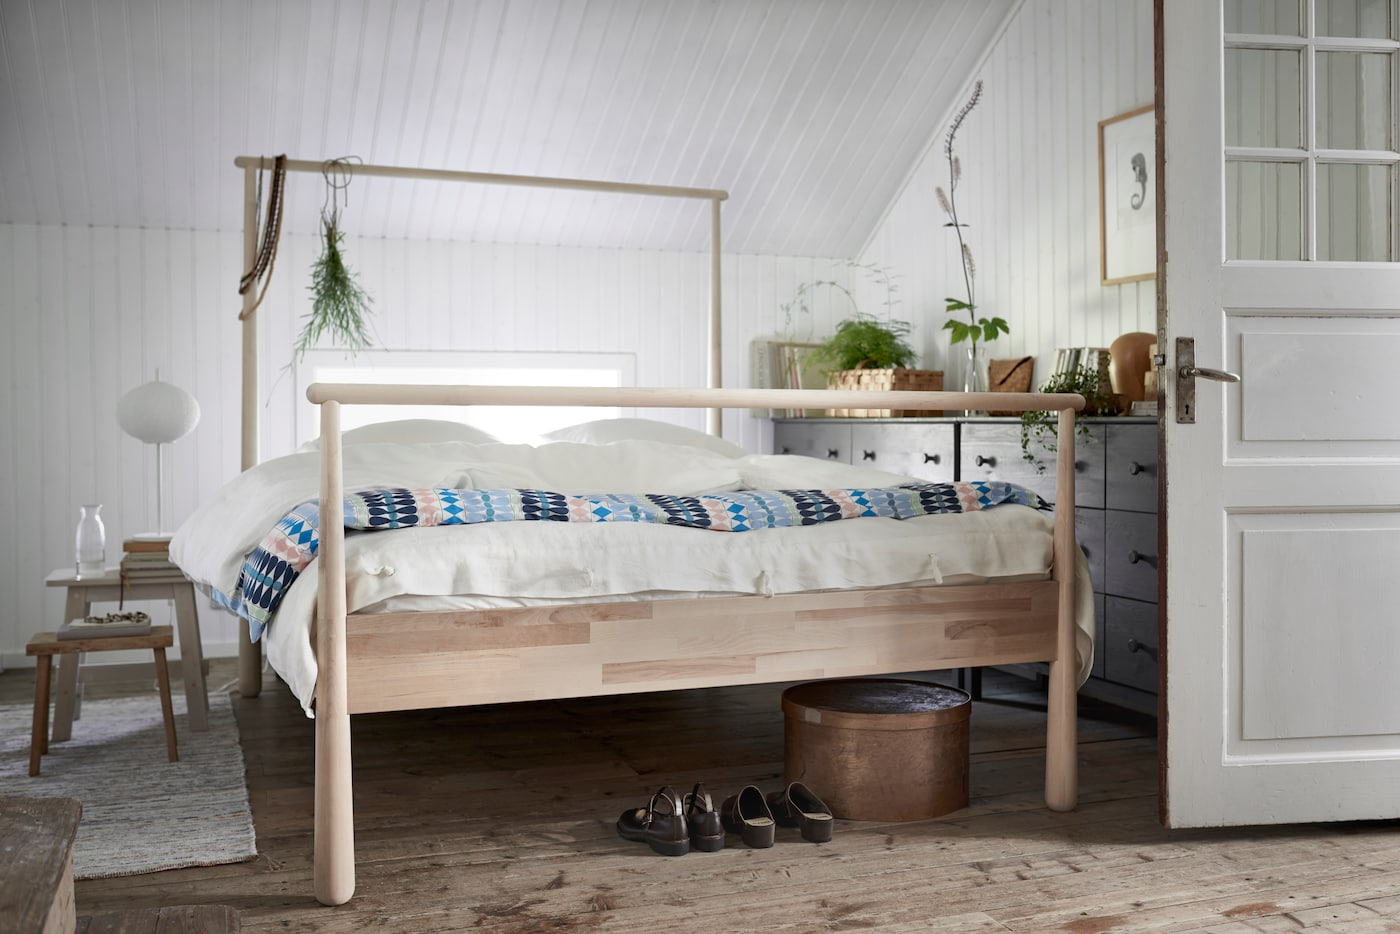 How to decorate a room with a bed as the main protagonist